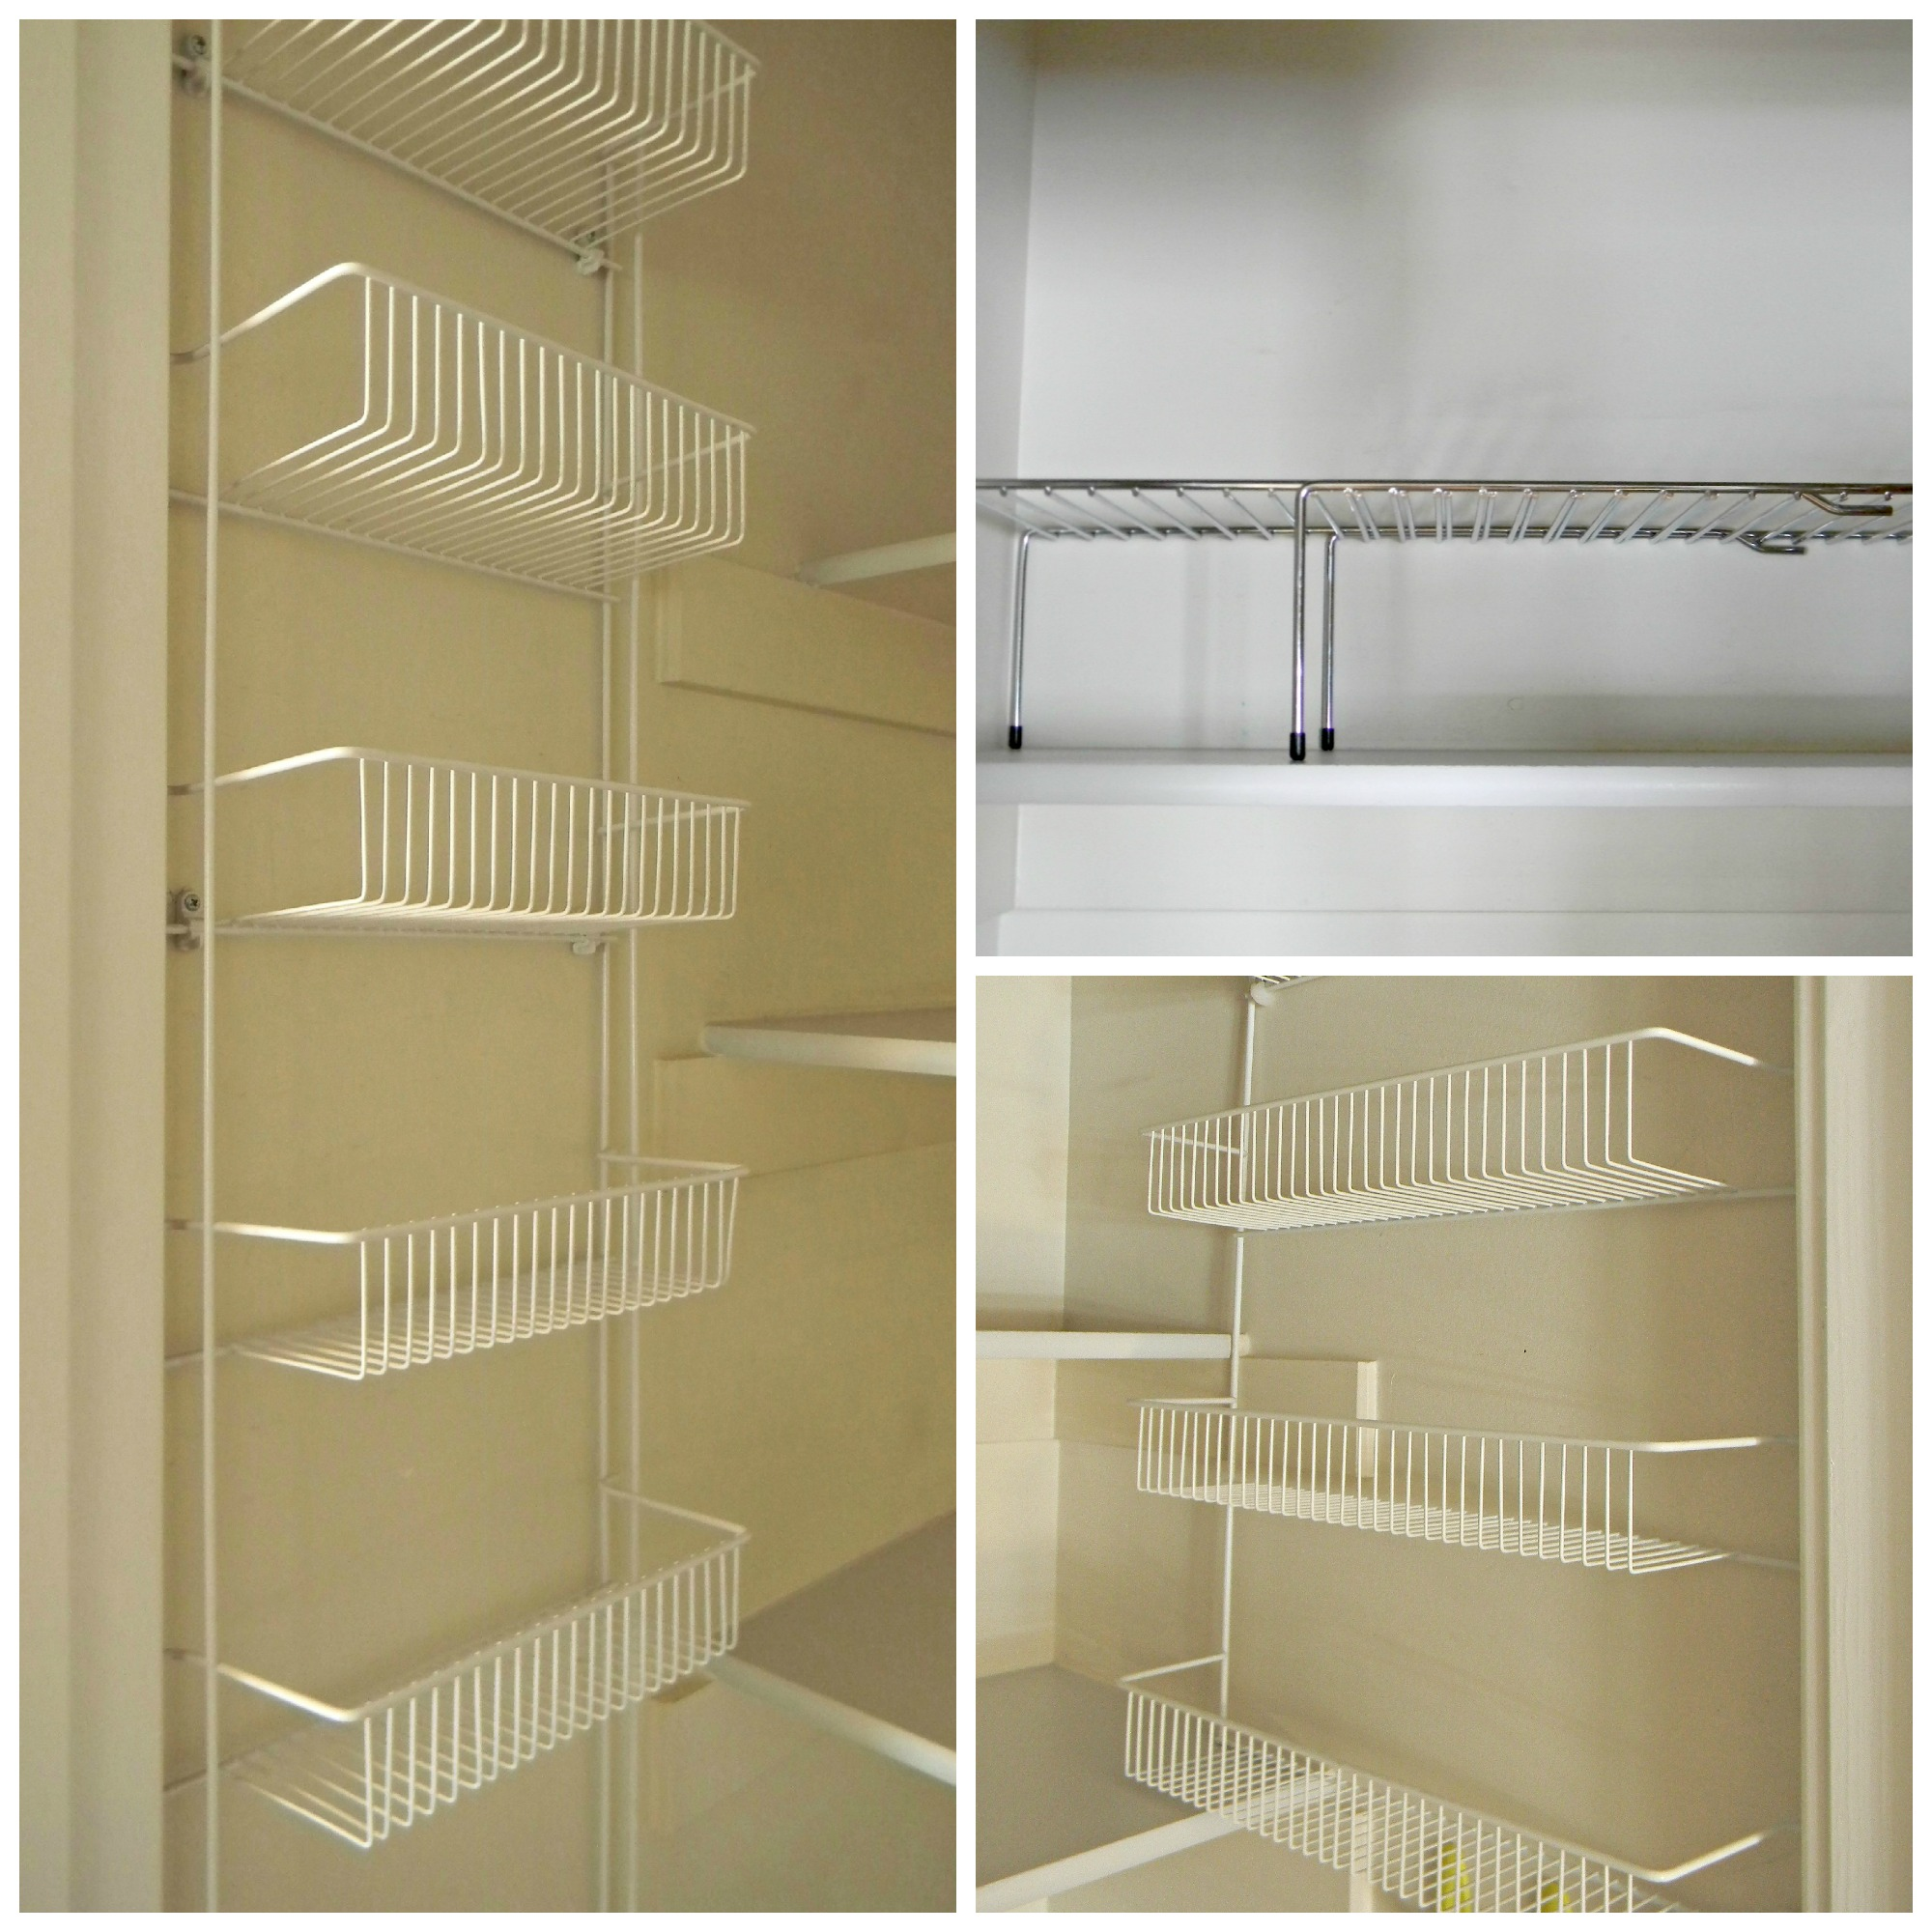 Pantry closet shelving systems top under stairs pantry for Best pantry shelving system